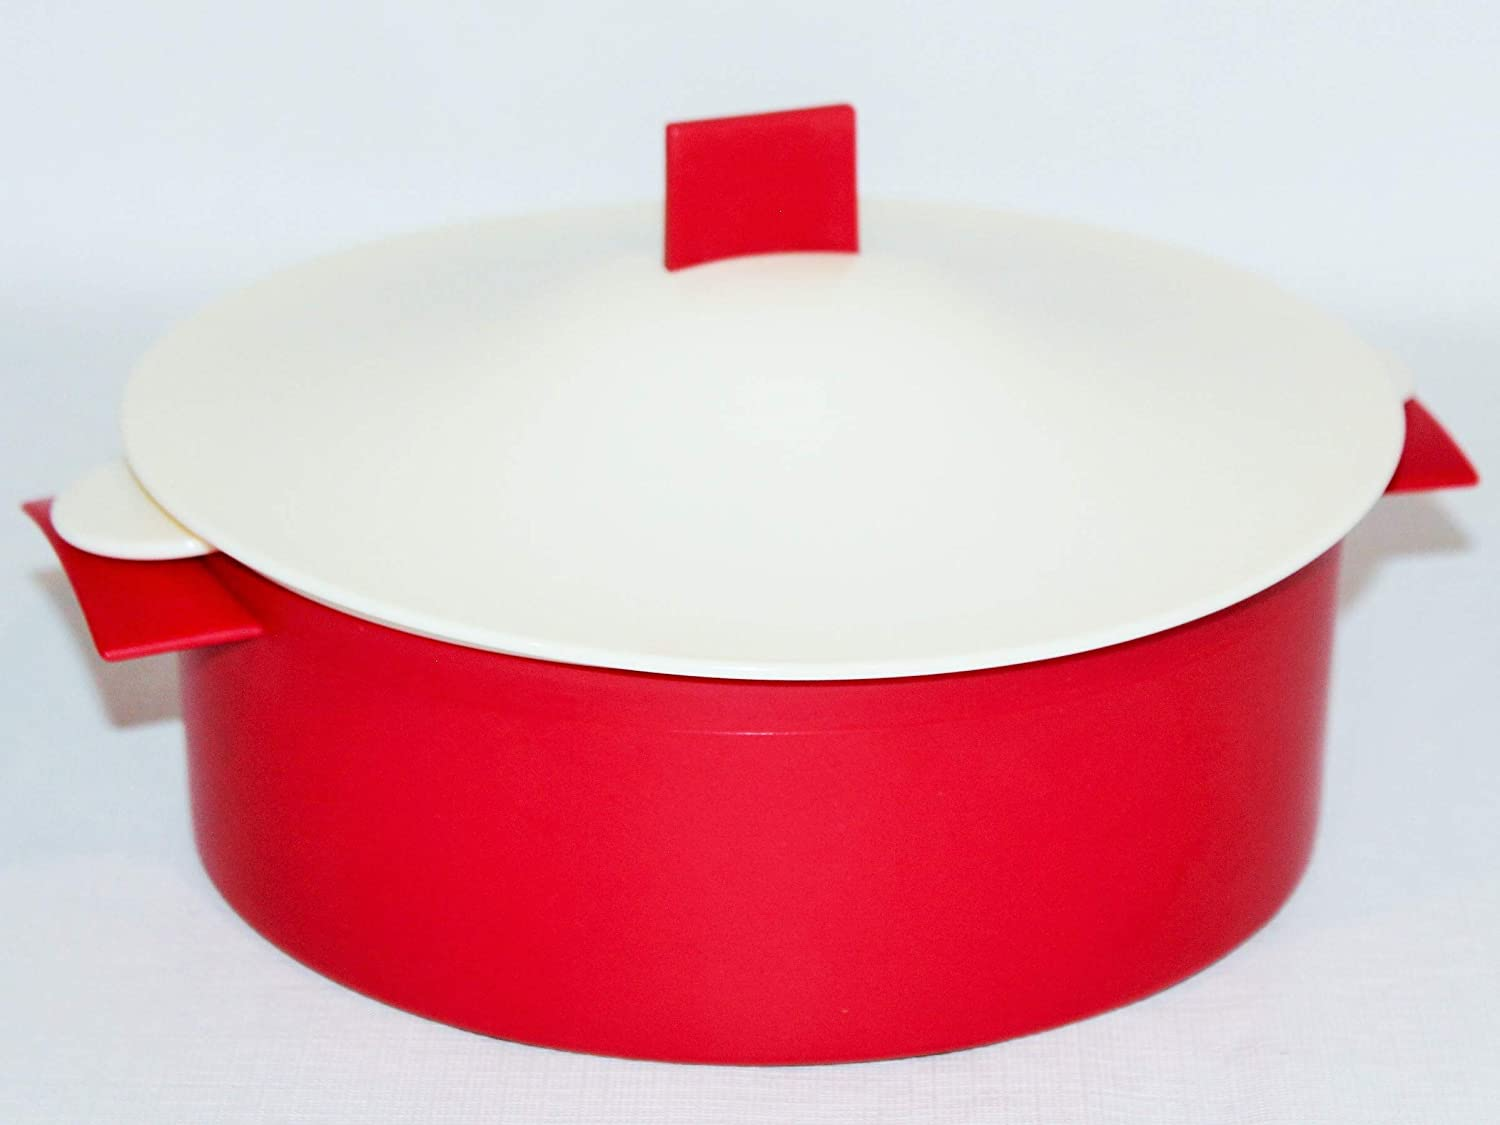 Tupperware Microsteamer 6 Cup Round Microwave Steamer Red Ivory